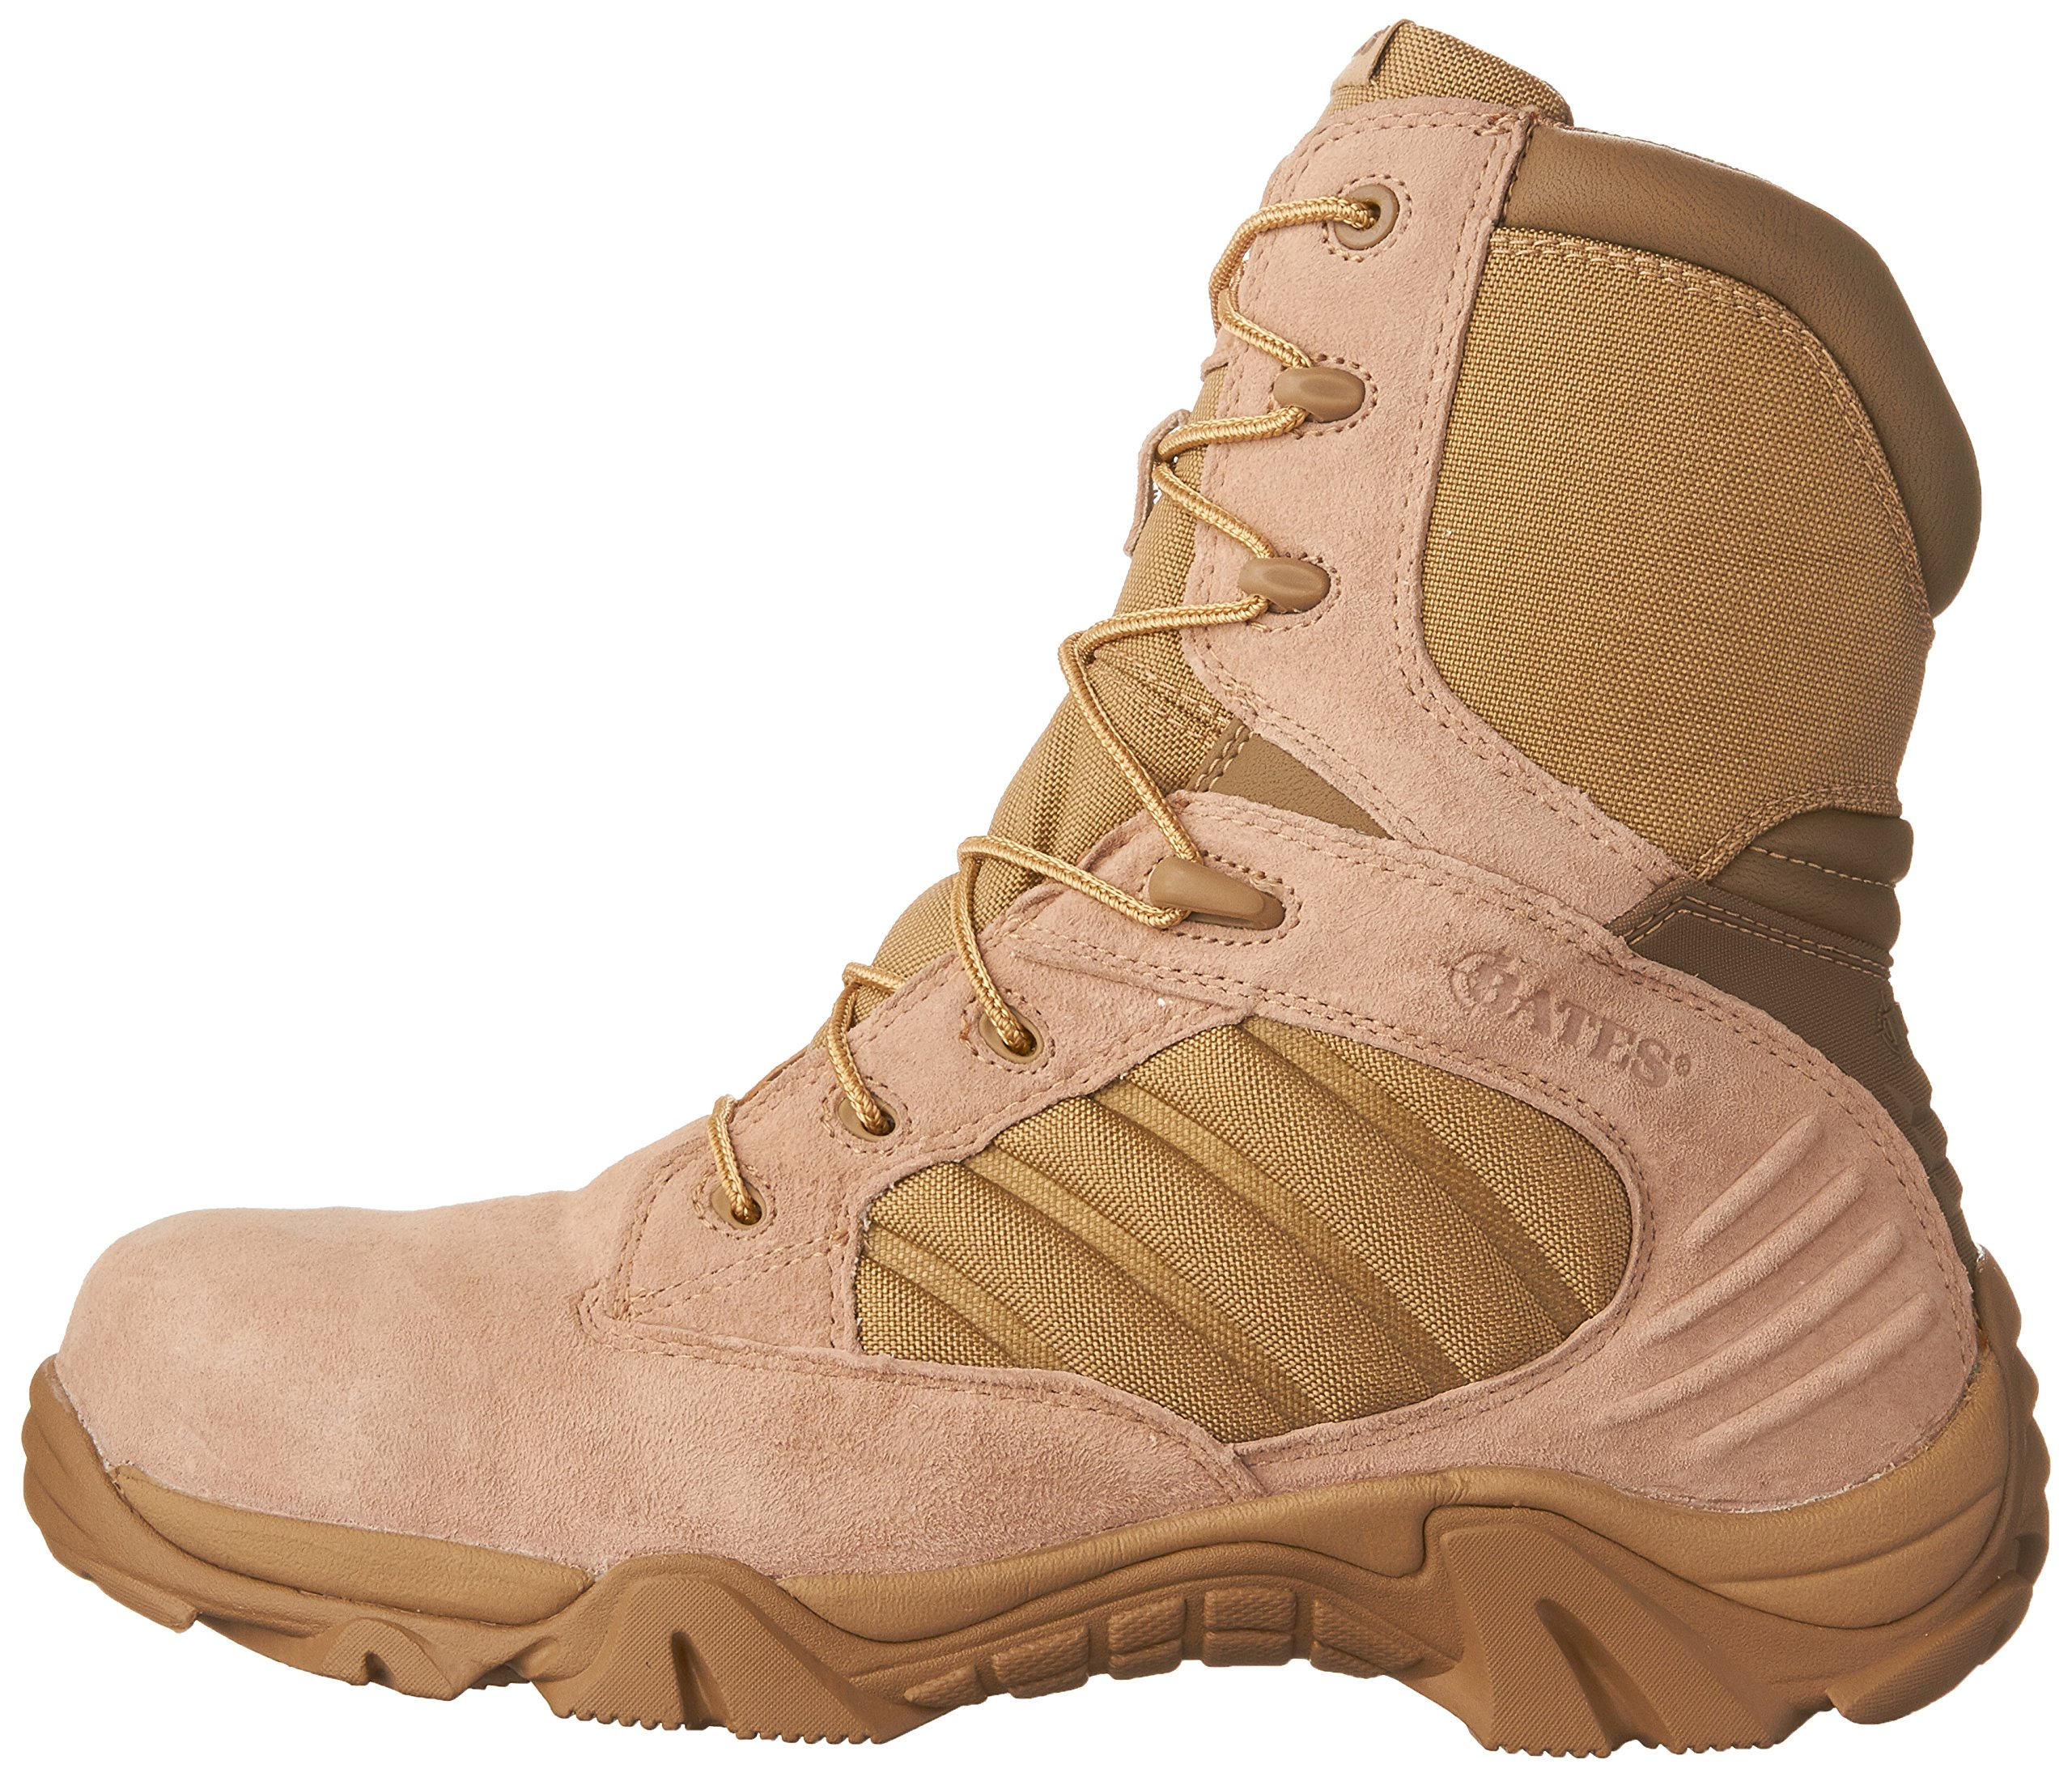 ac42589ac89 Bates Men's GX-8 Comp Toe Side Zip Work Boot - GX-8 SAGE 8